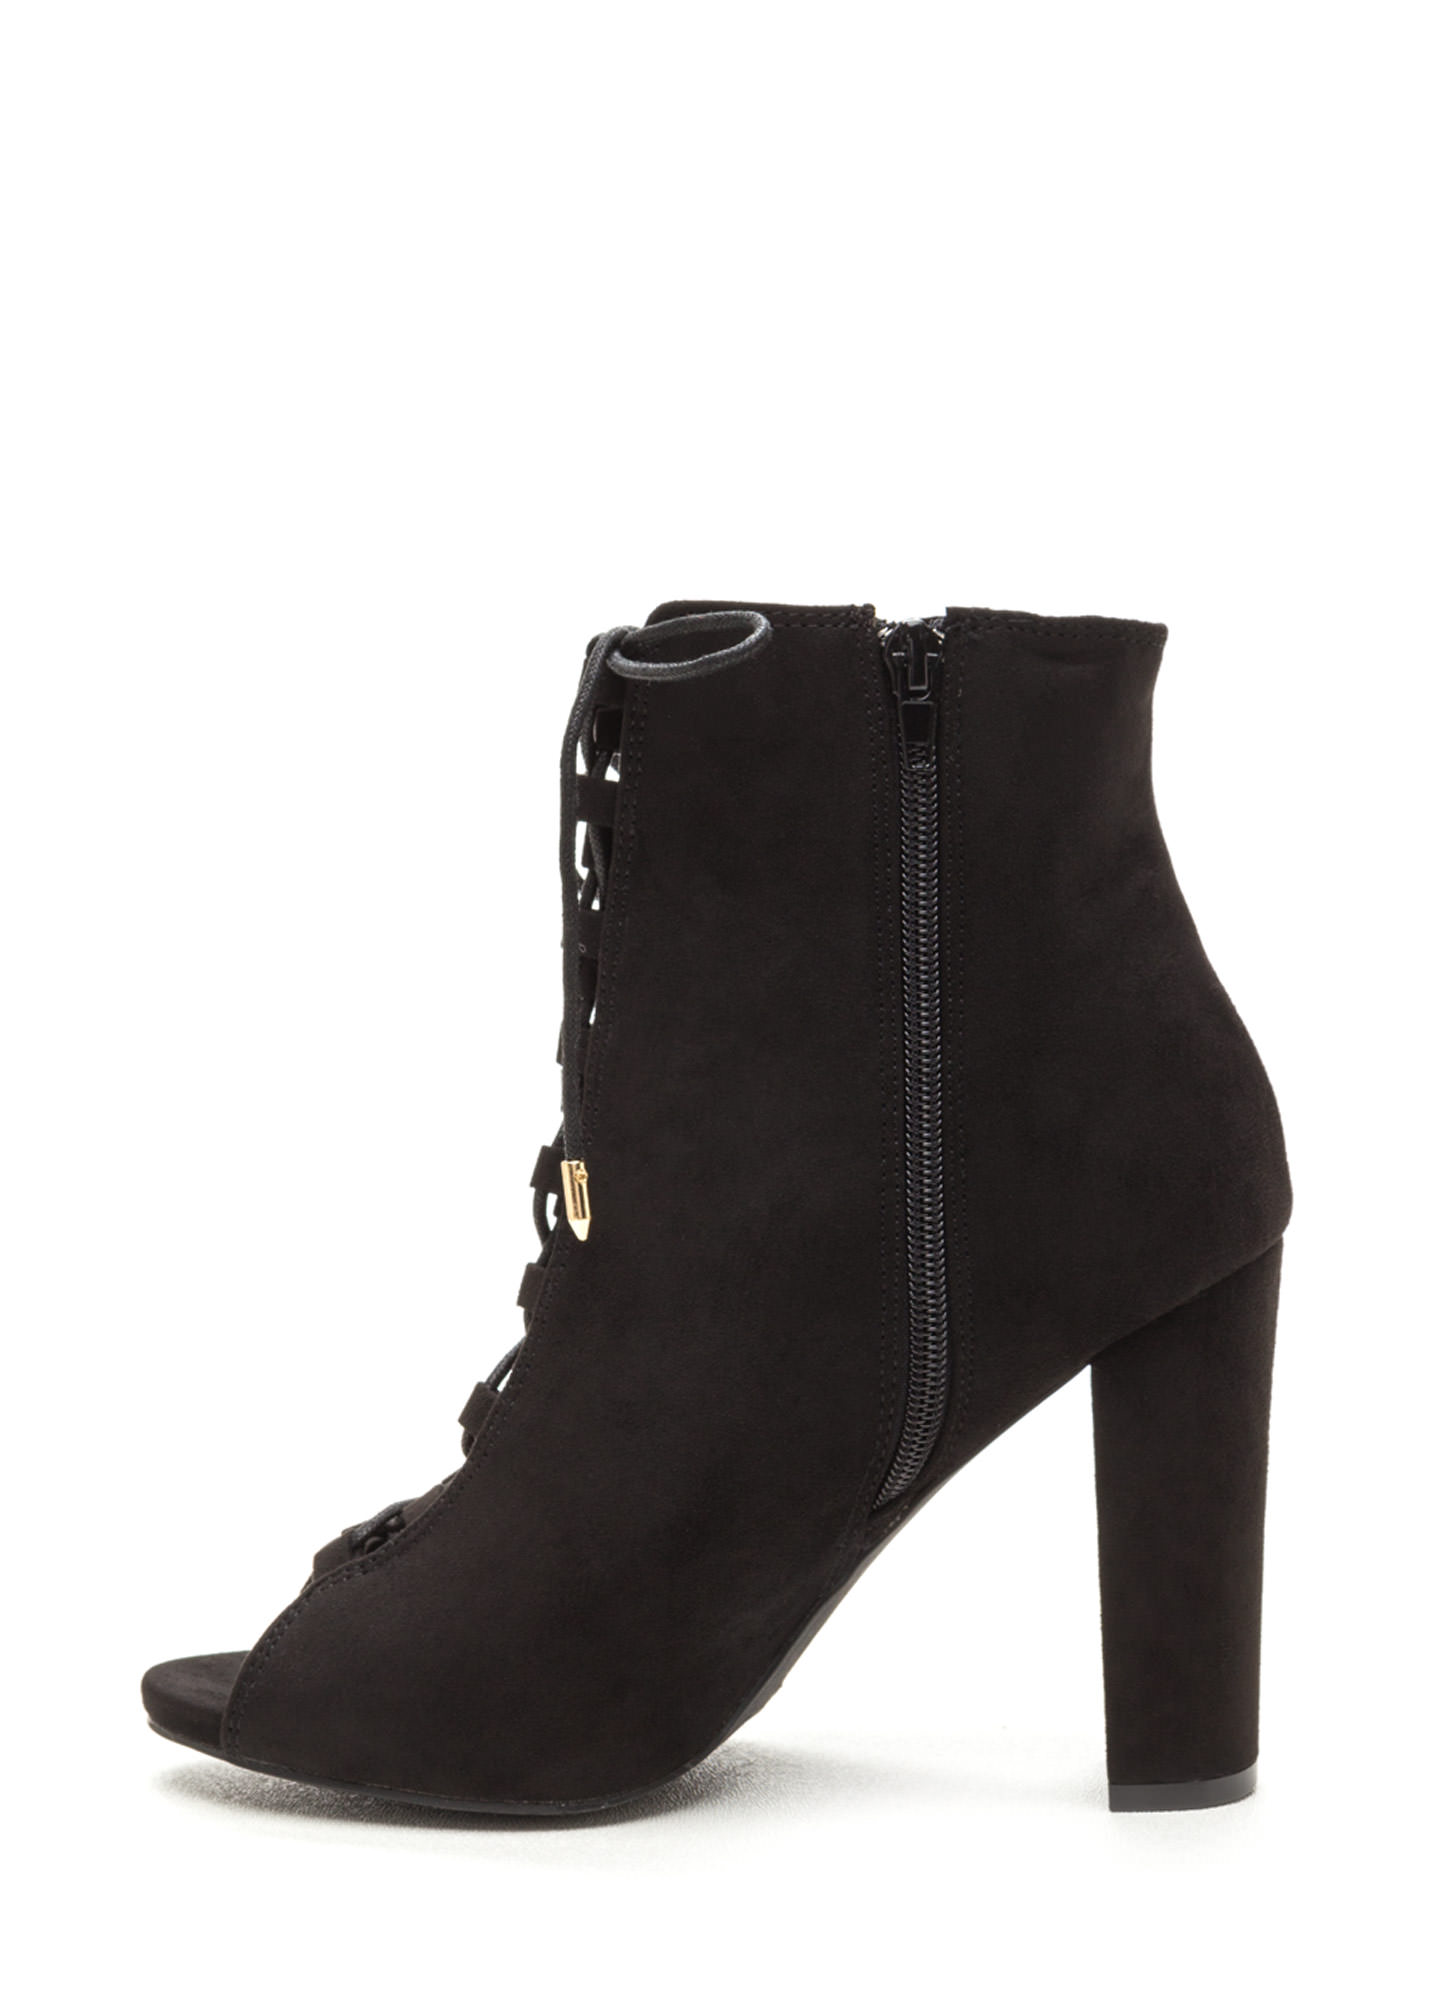 Essential Element Lace-Up Booties BLACK